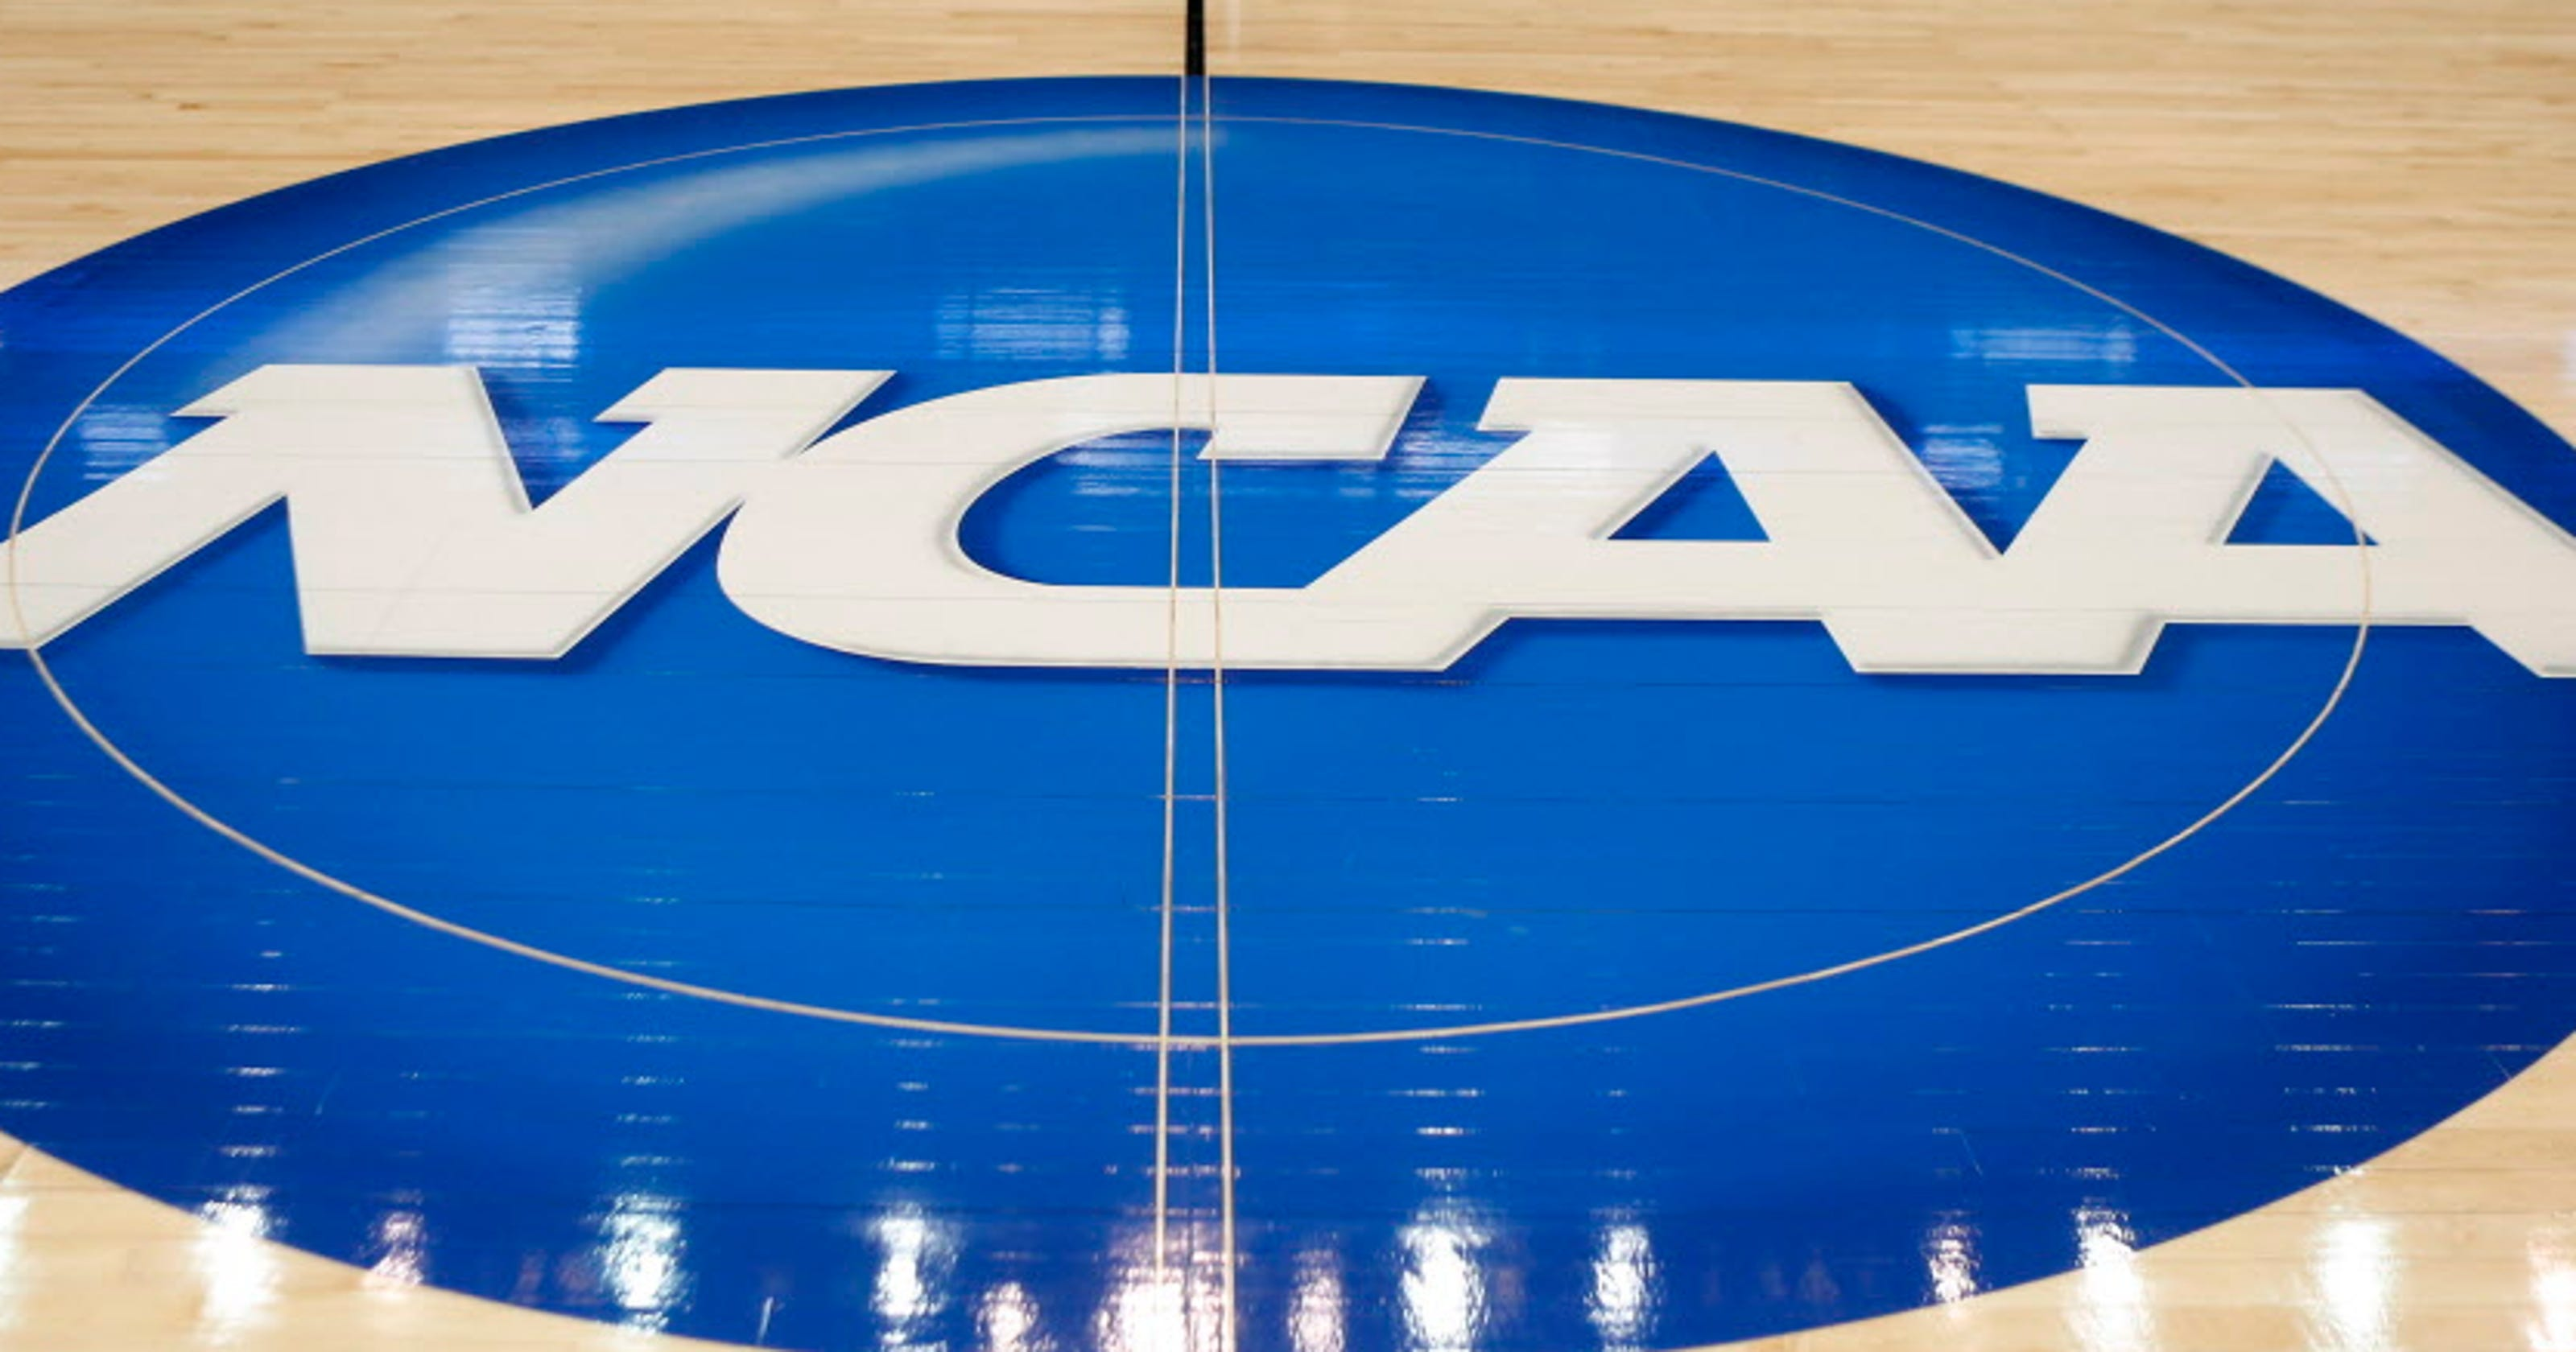 Nescas Updated List Of Special >> Ncaa Must Defend Limits On Compensation To College Athletes In Court